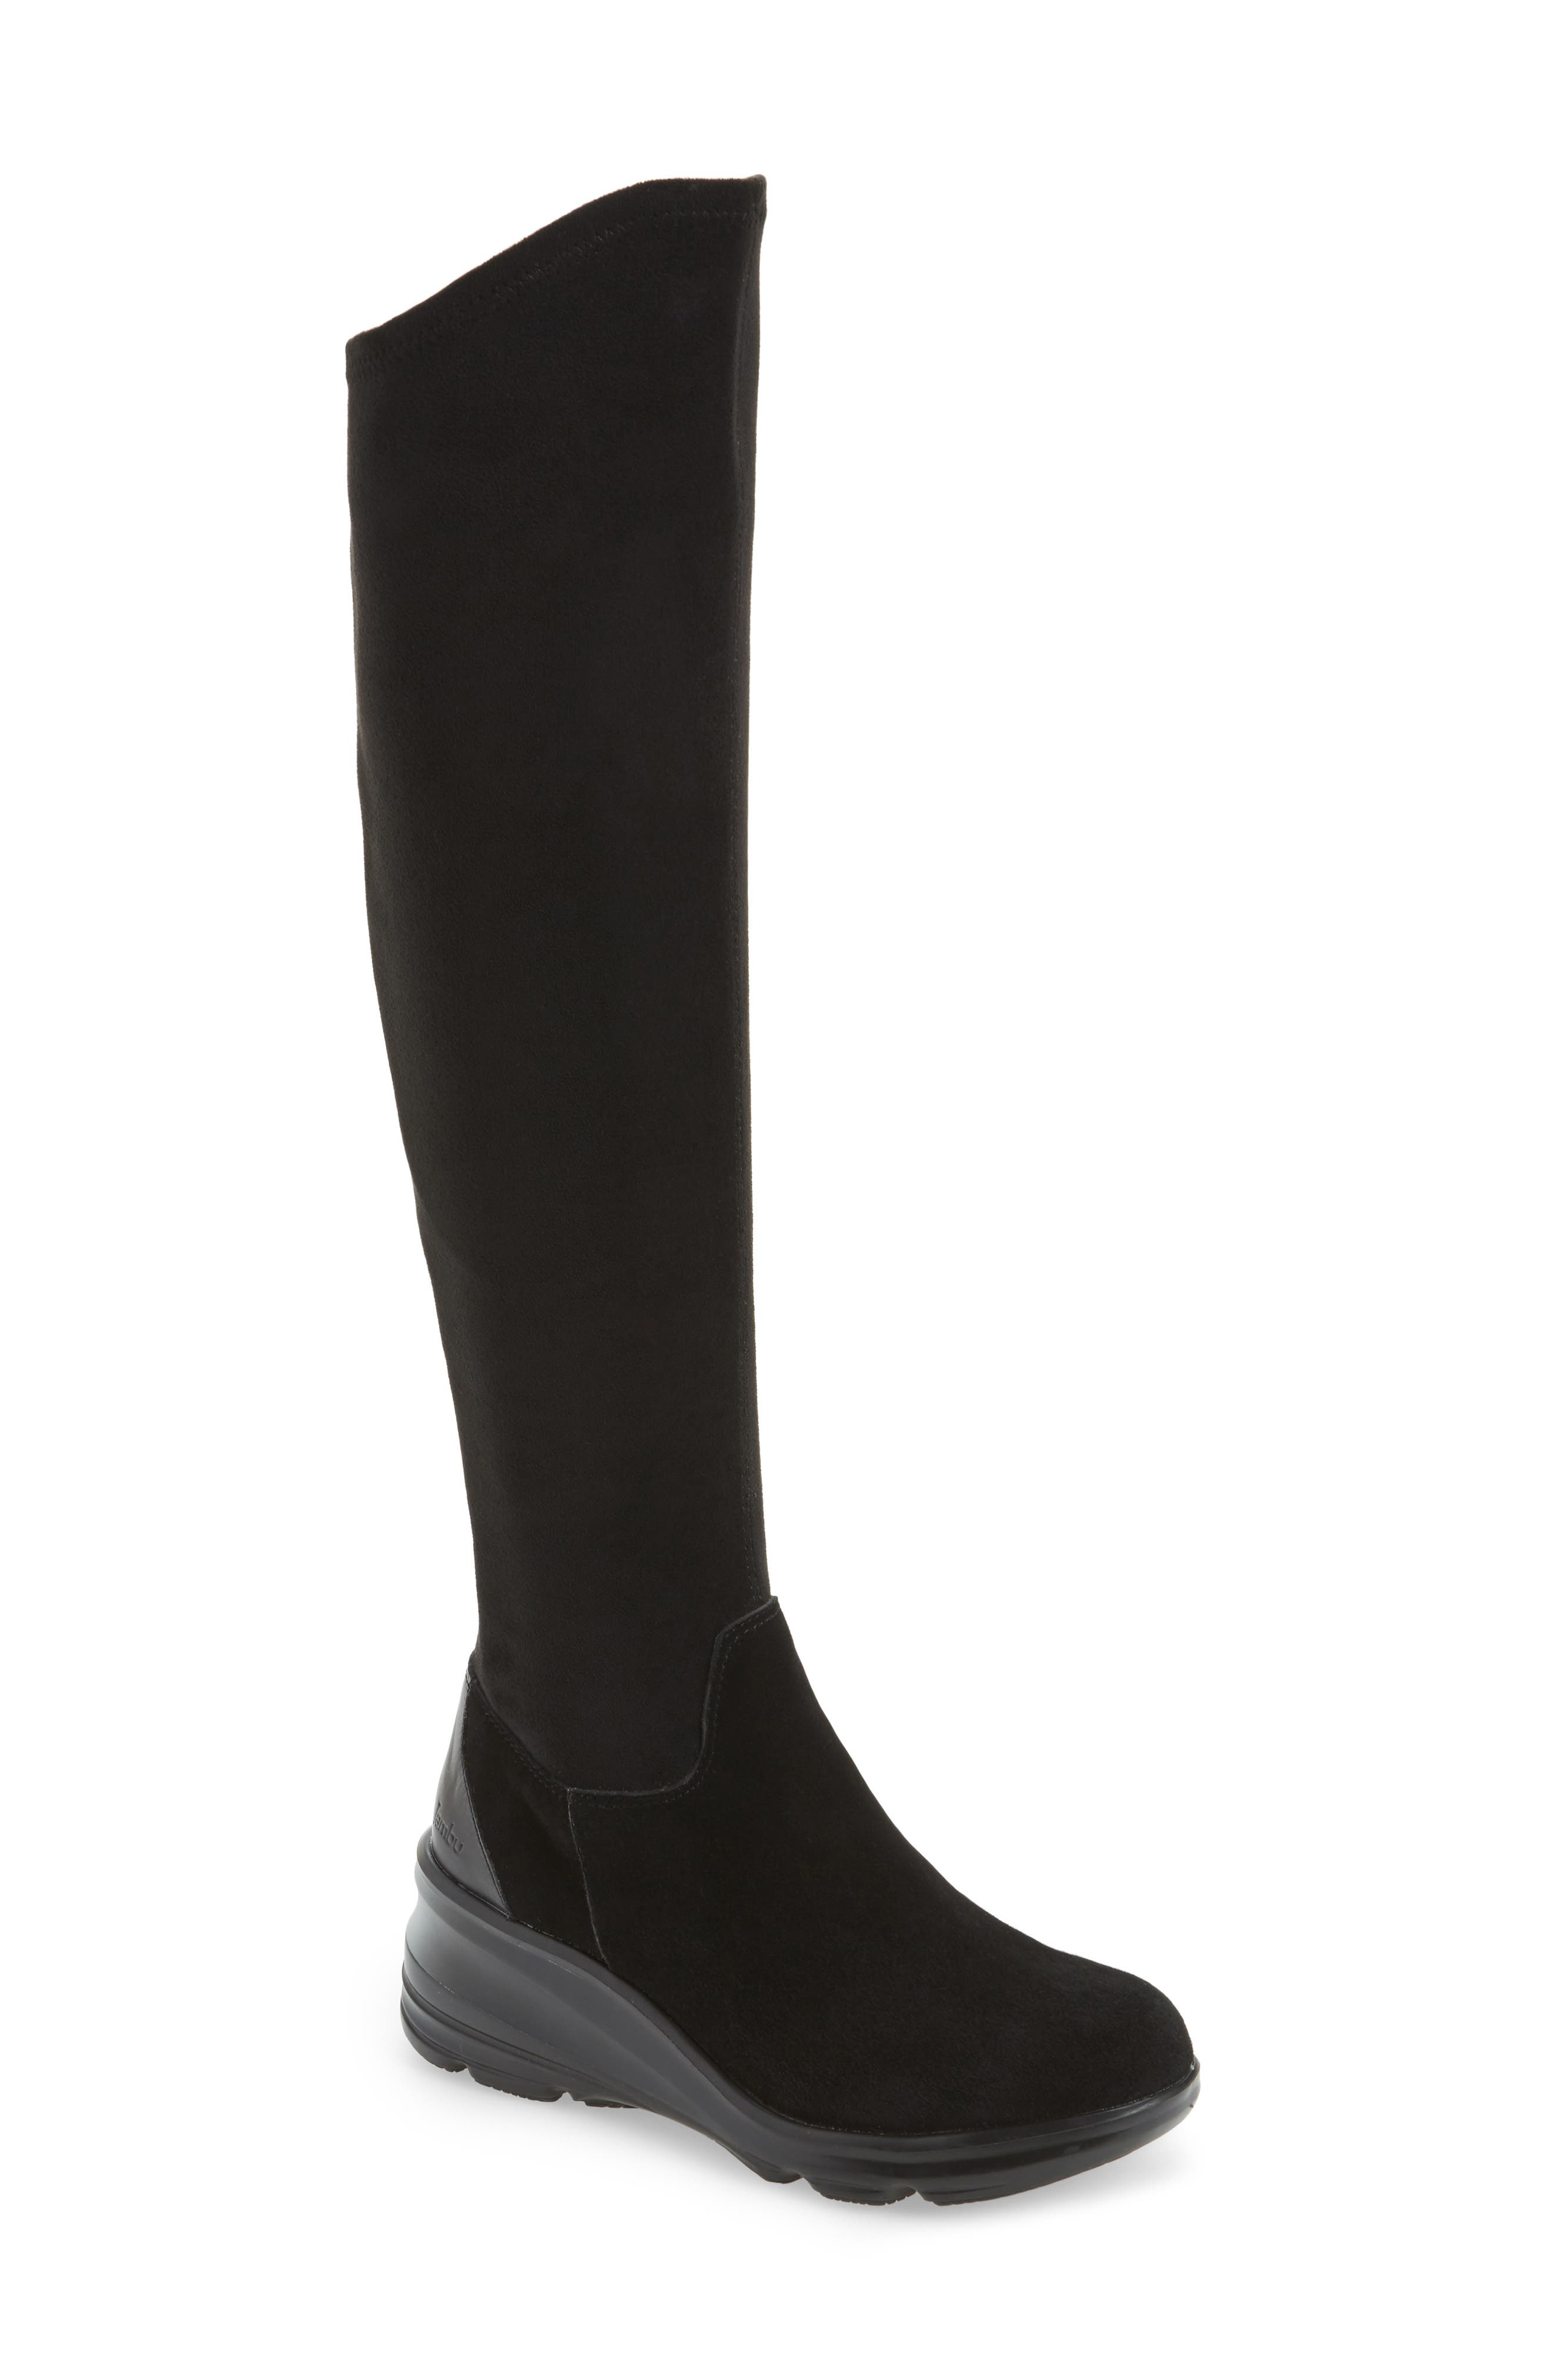 JAMBU Kendra Over the Knee Water-Resistant Boot